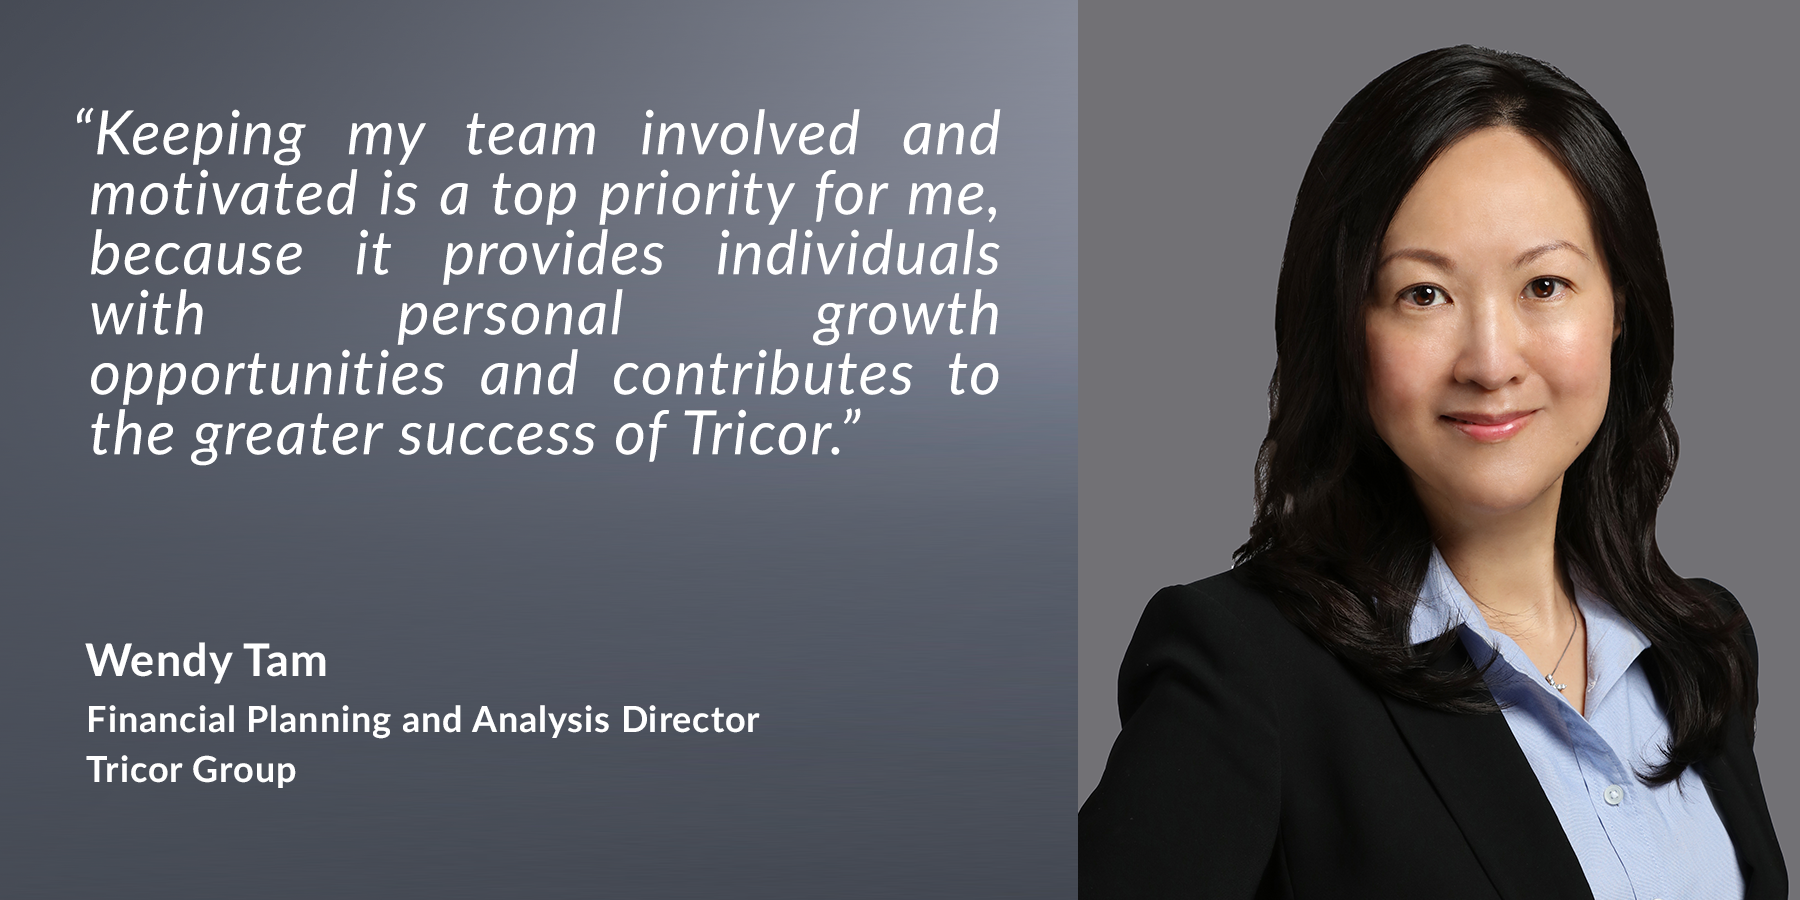 Wendy Tam - Financial Planning & Analysis Director, Tricor Group